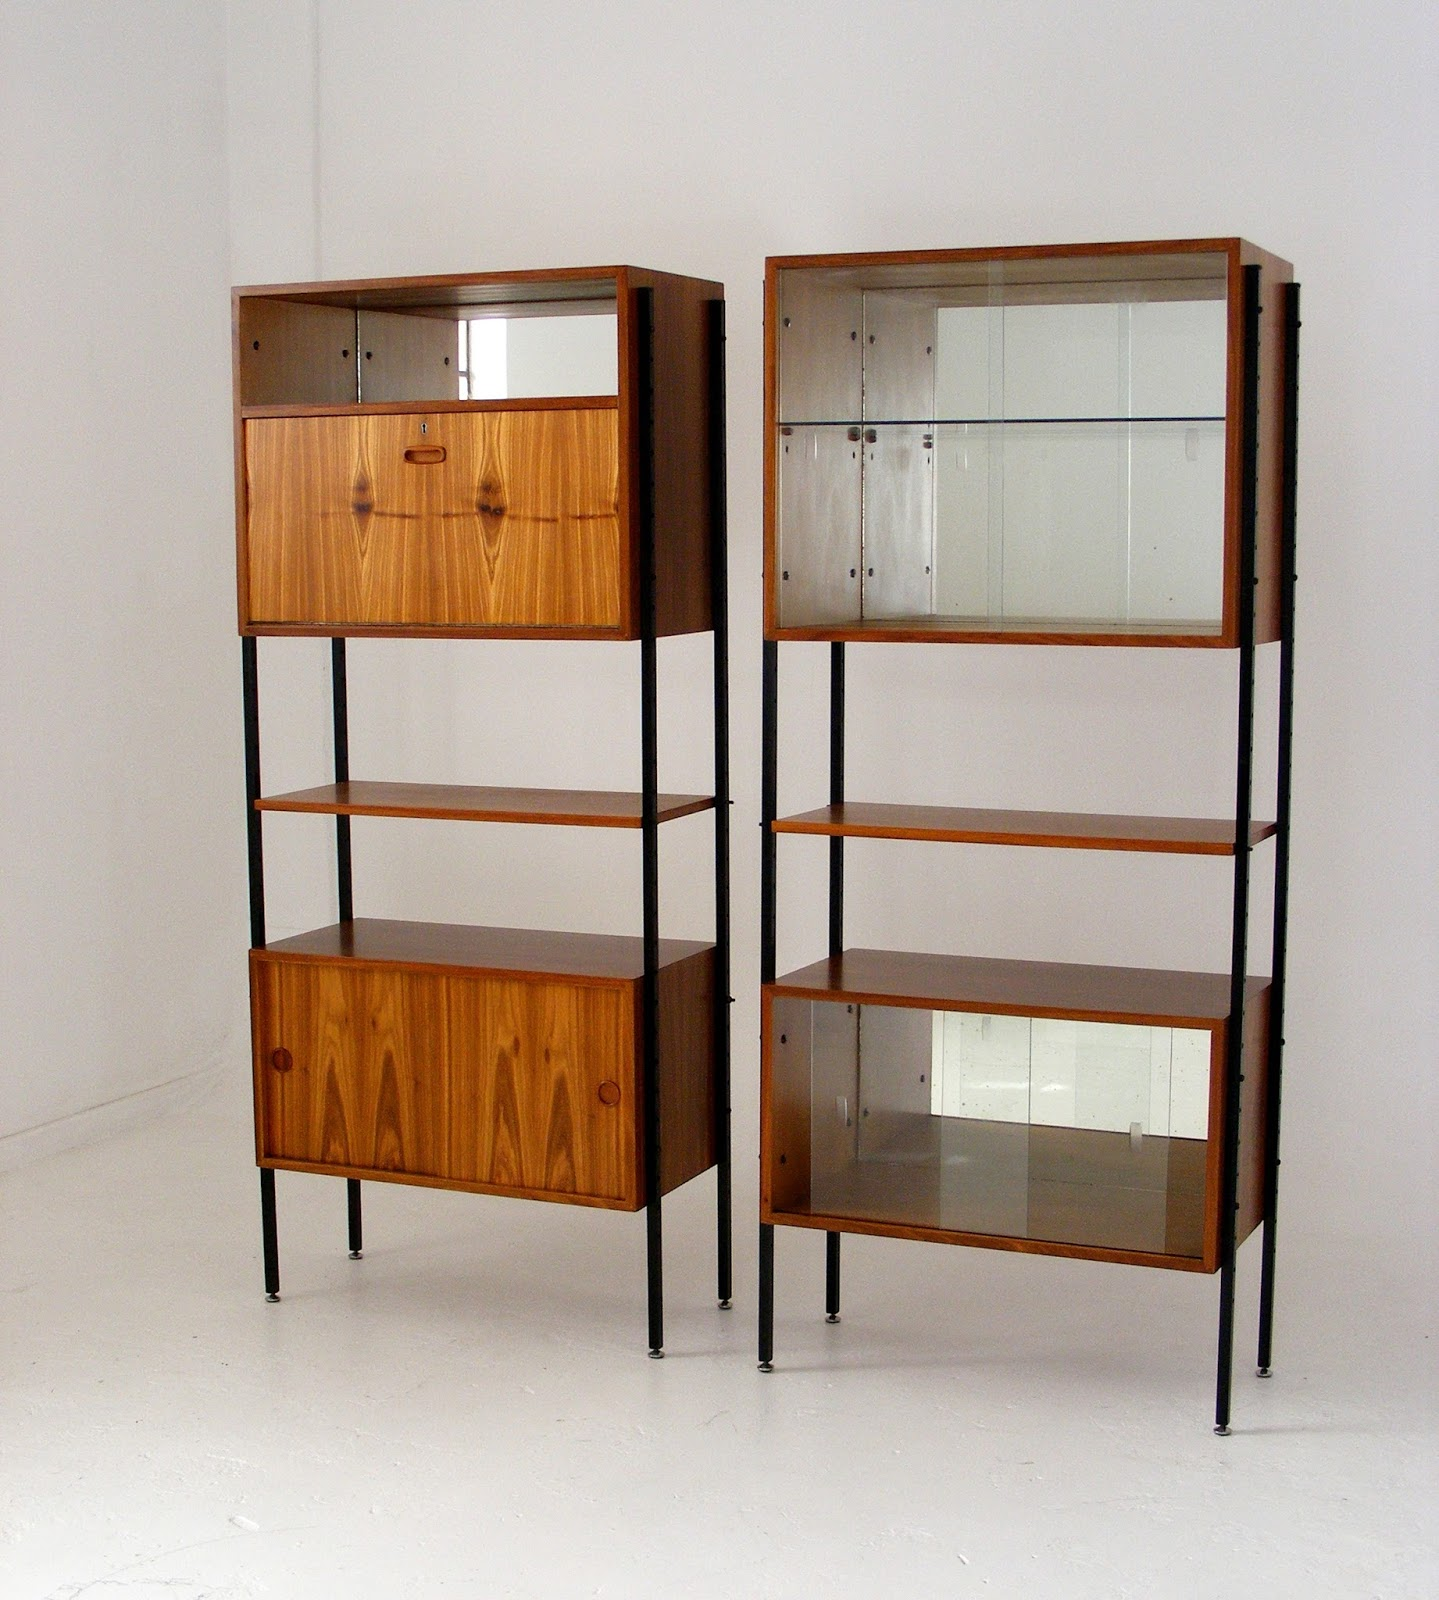 VAMP FURNITURE: This weeks new vintage furniture stock - 18 November ...